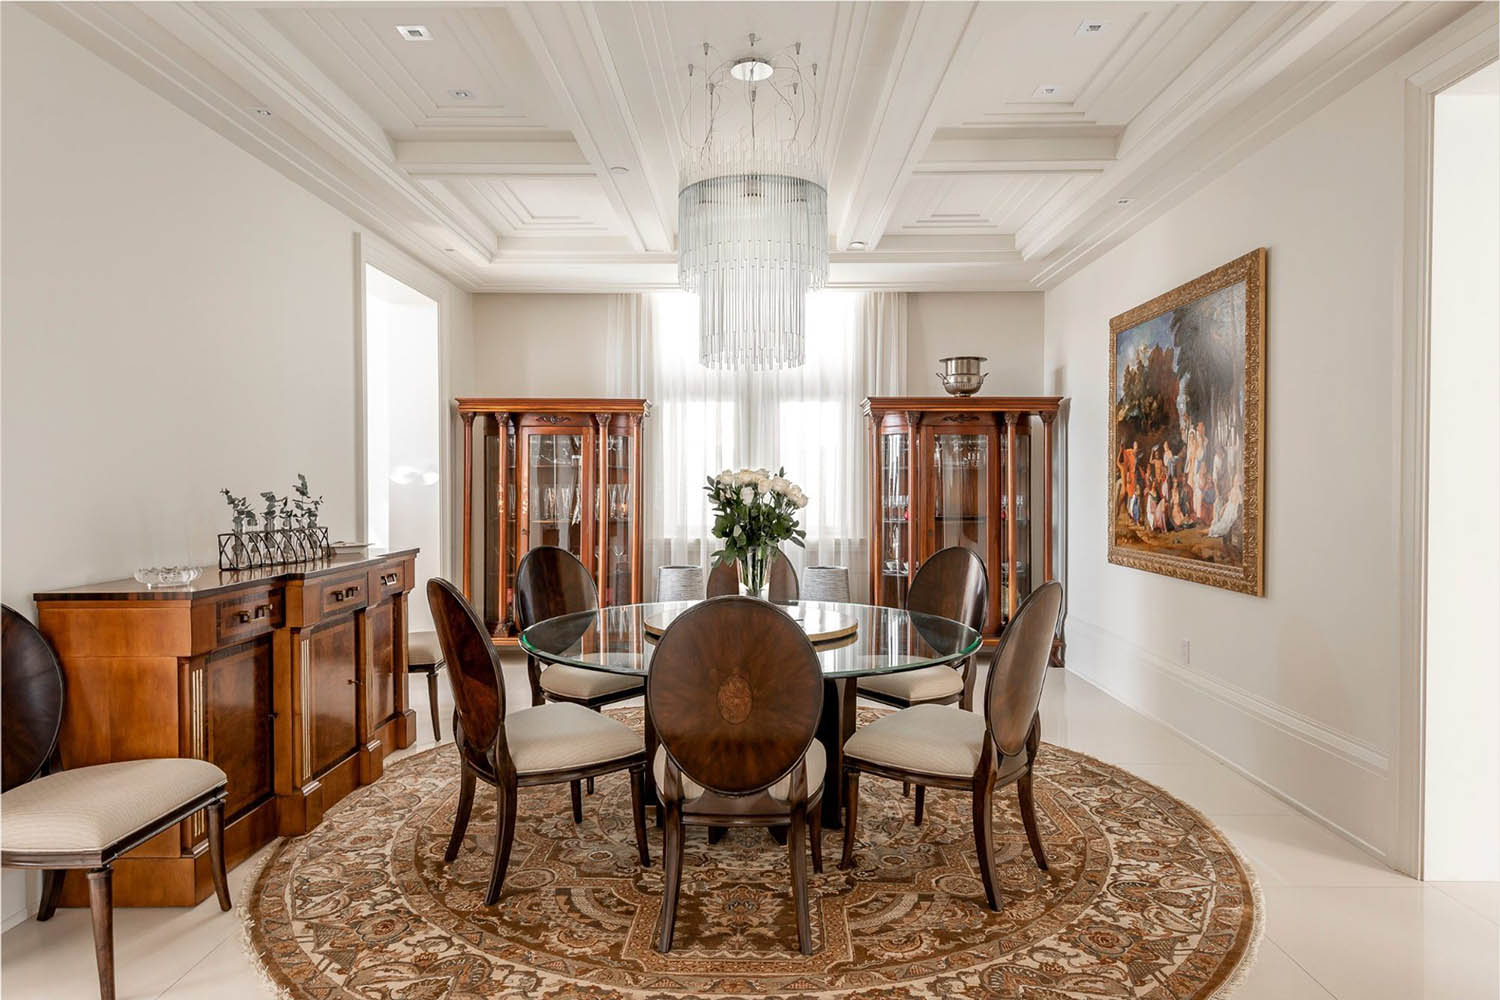 Simple dining room with a beautiful coffered ceiling. White beams and coffers with a crystal chandelier. Round glass table with wood chairs.